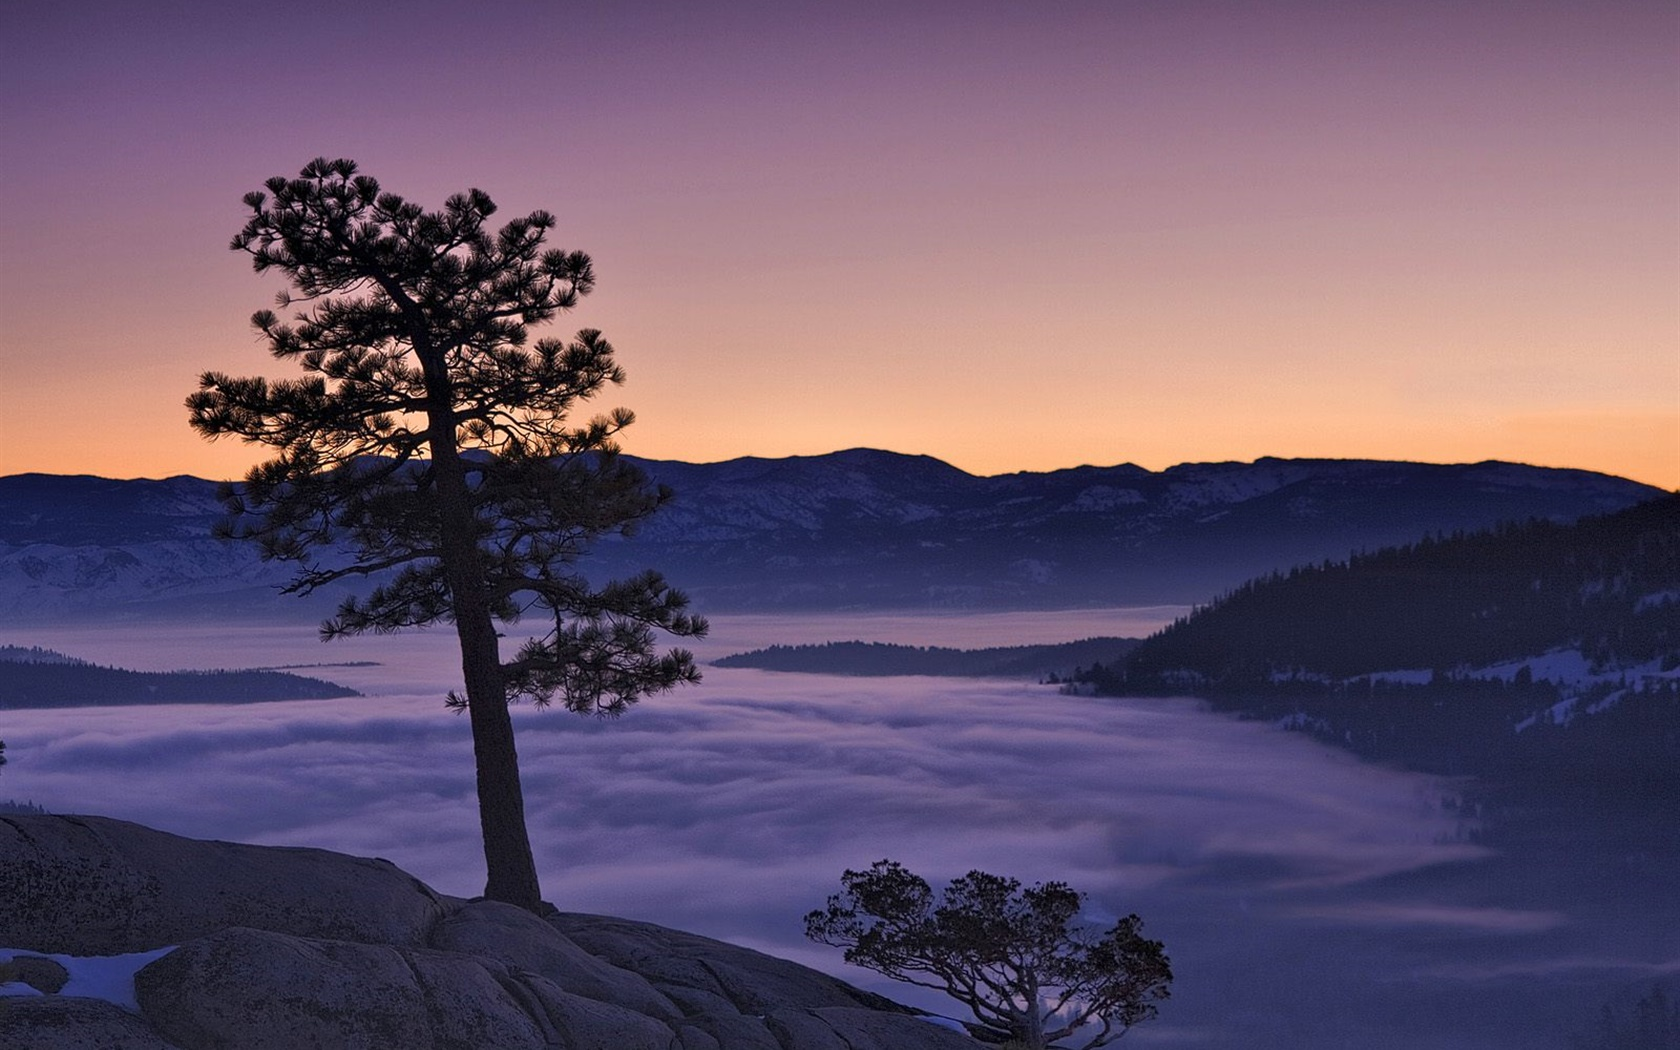 Tree, fog, mountains, dawn 1680x1050 wallpaper